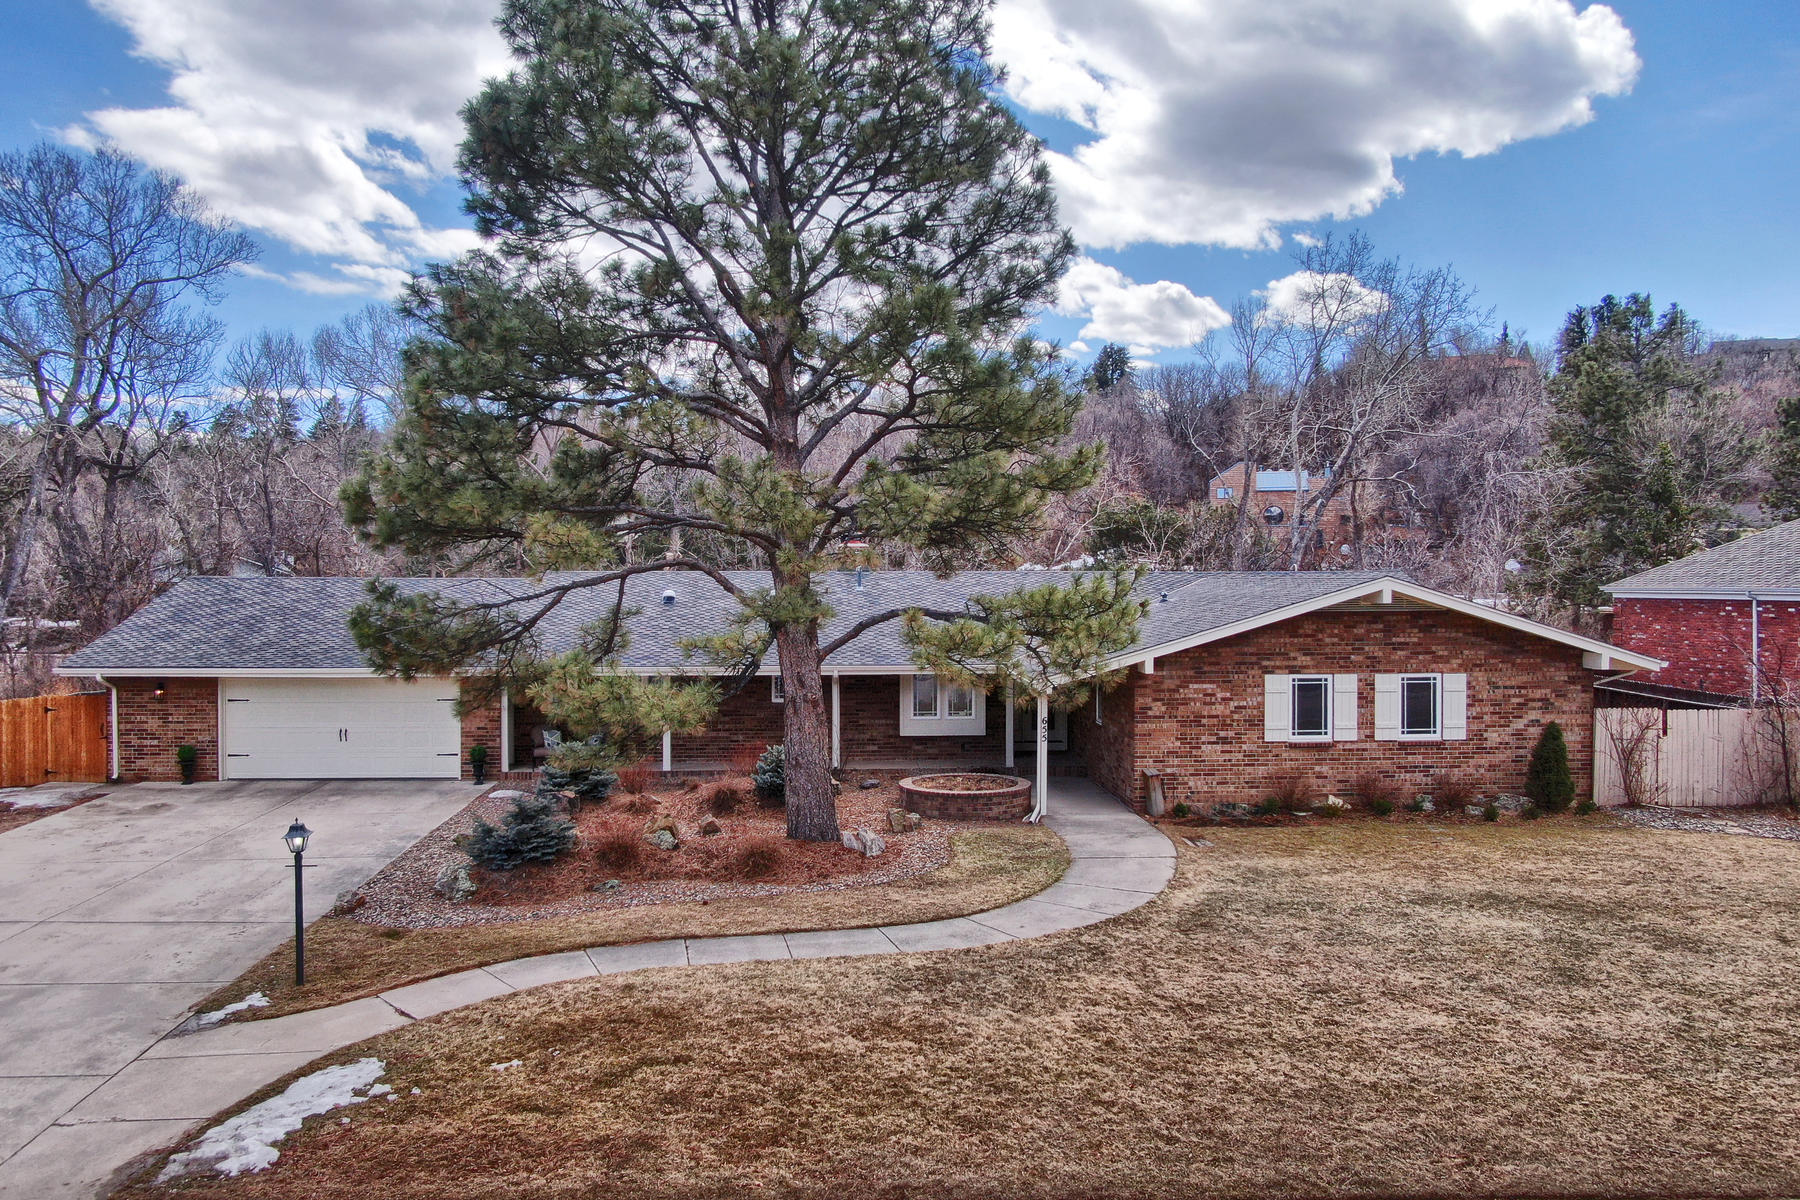 Single Family Homes for Sale at The elegant updated Broadmoor home you've longed for. 655 N Bear Paw Lane Colorado Springs, Colorado 80906 United States